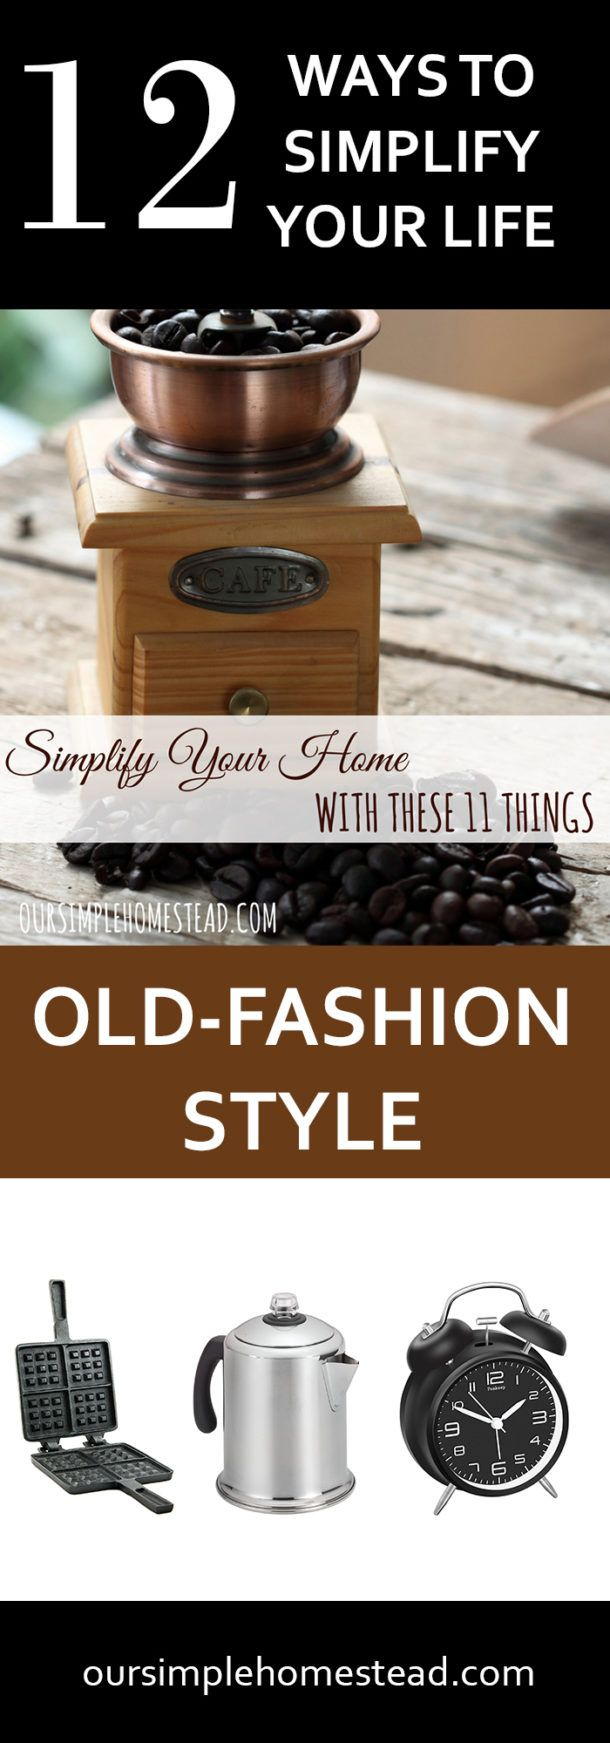 Simplify Your Life With These 11 OldFashion Things Old